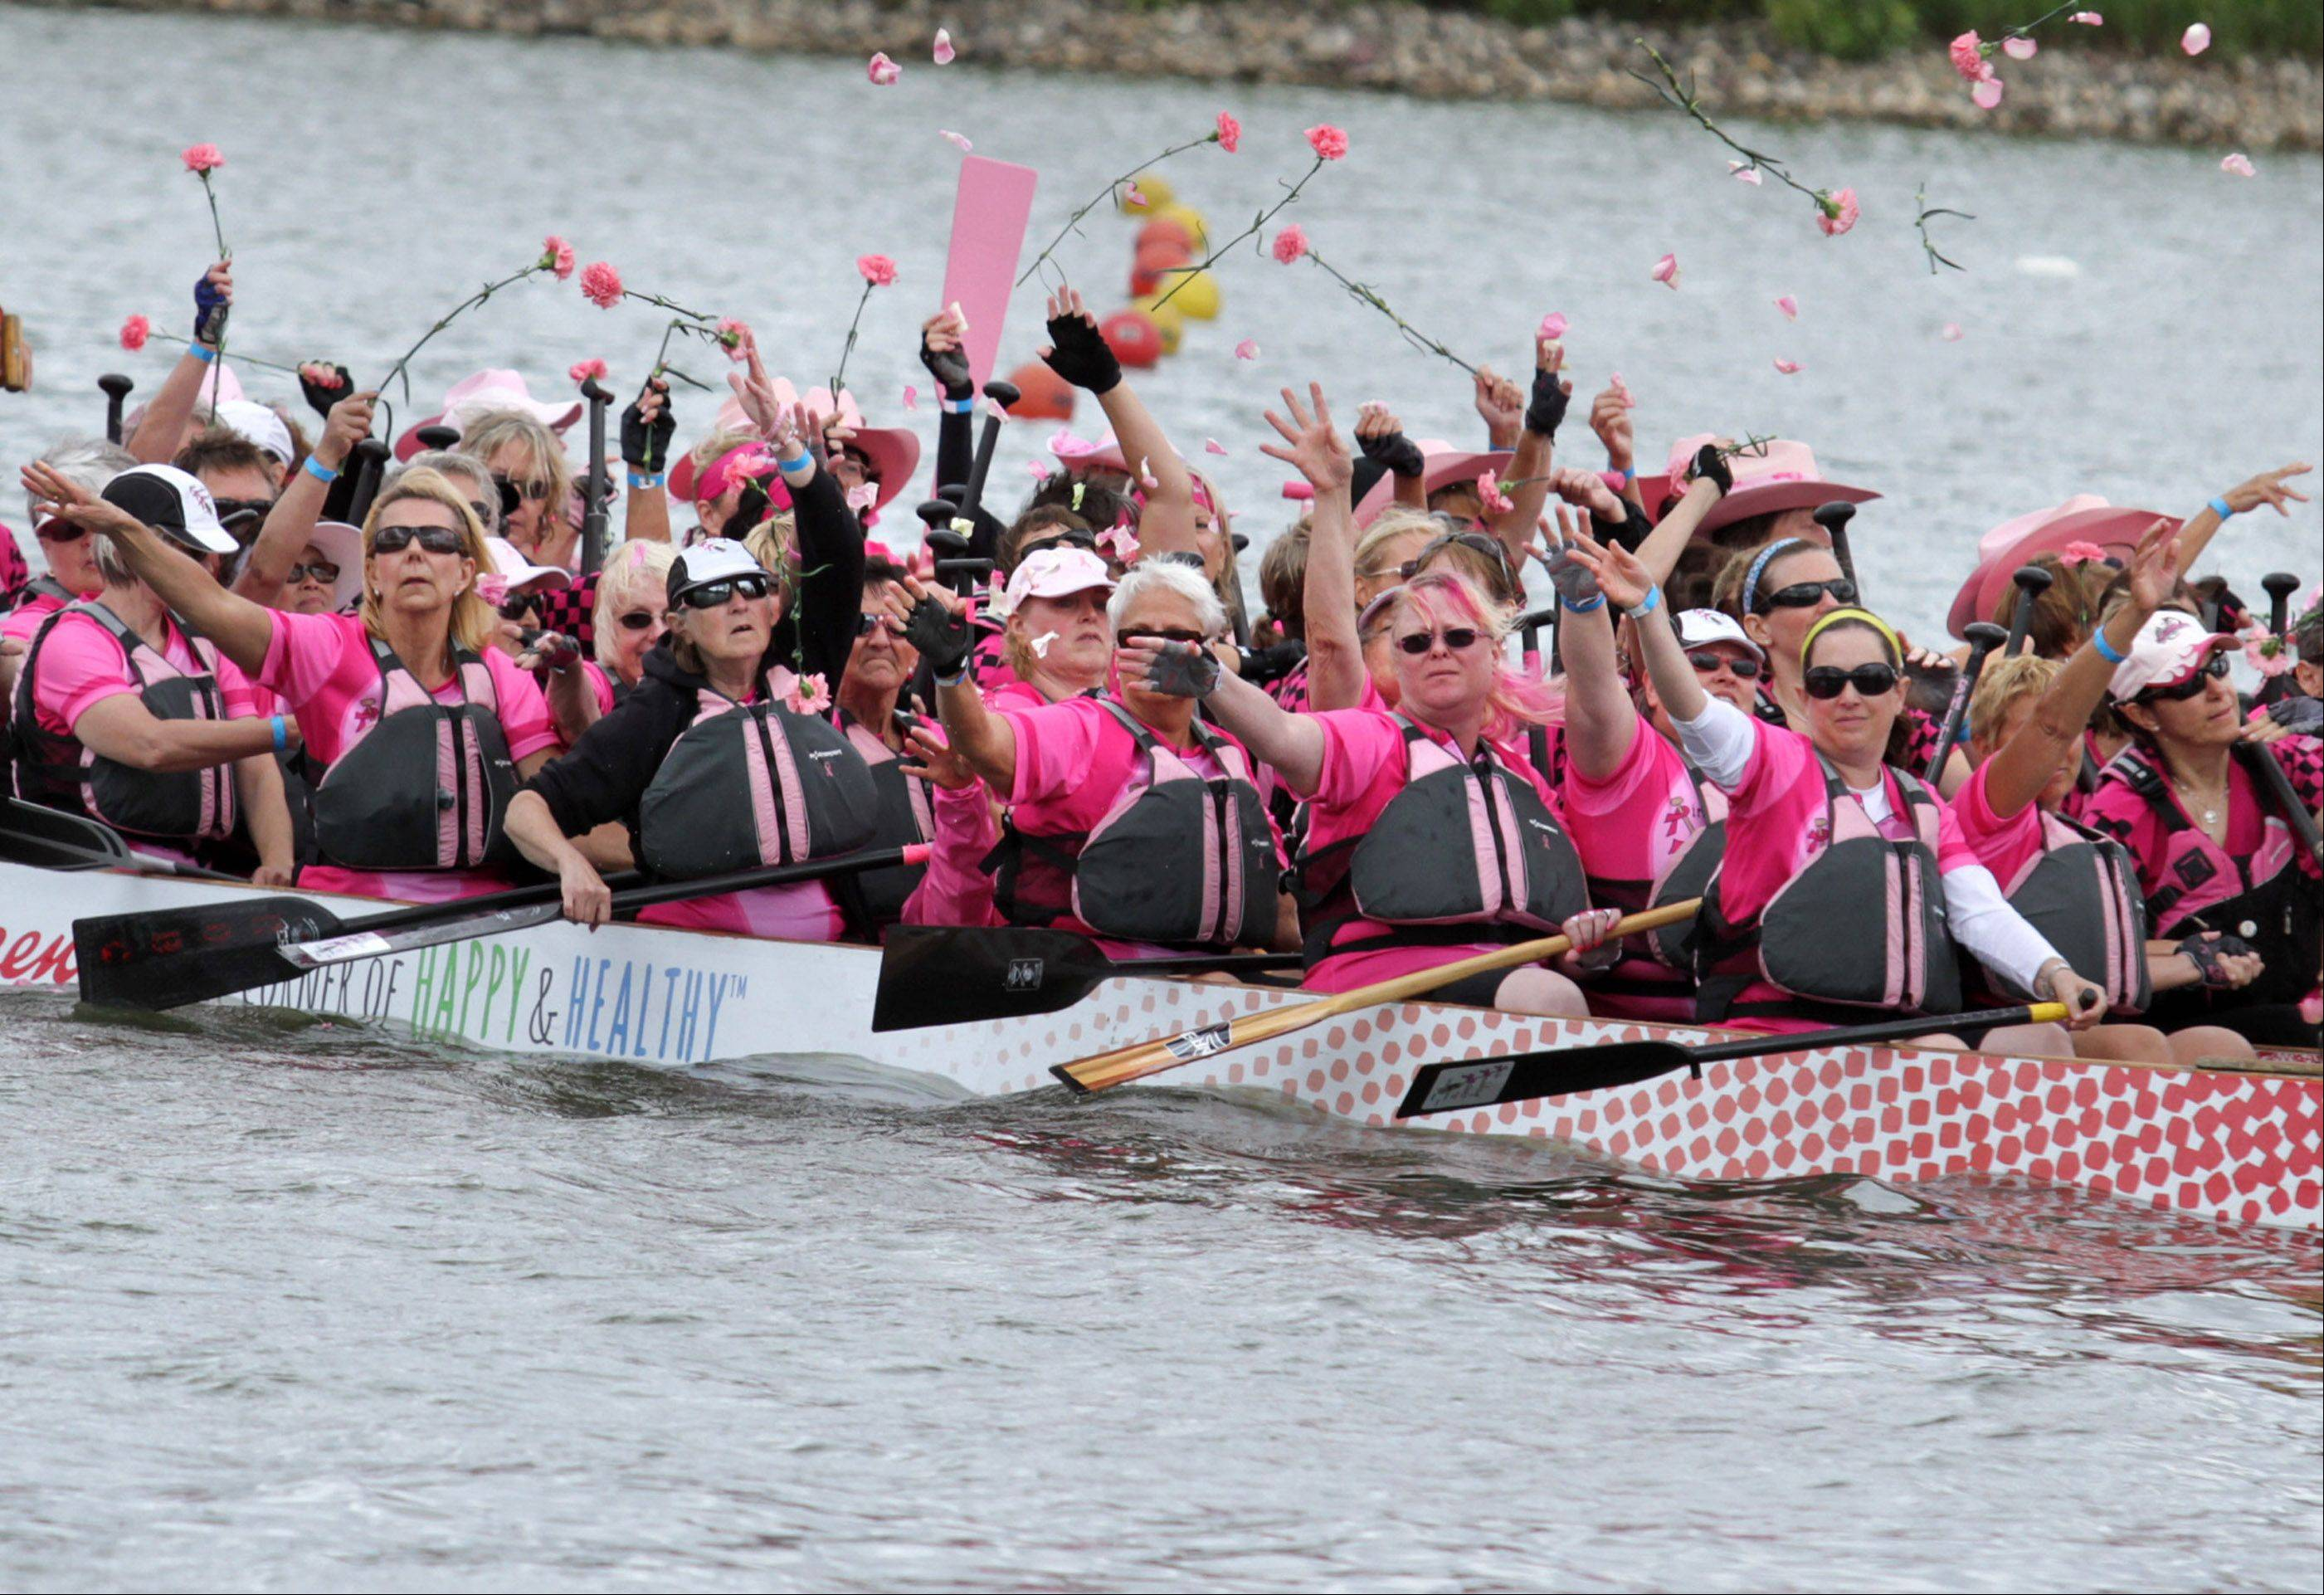 Cancer survivor teams wore pink and held a ceremony throwing roses into Lake Arlington during the Walgreens Chicago International Dragon Boat Festival in Arlington Heights on Saturday.